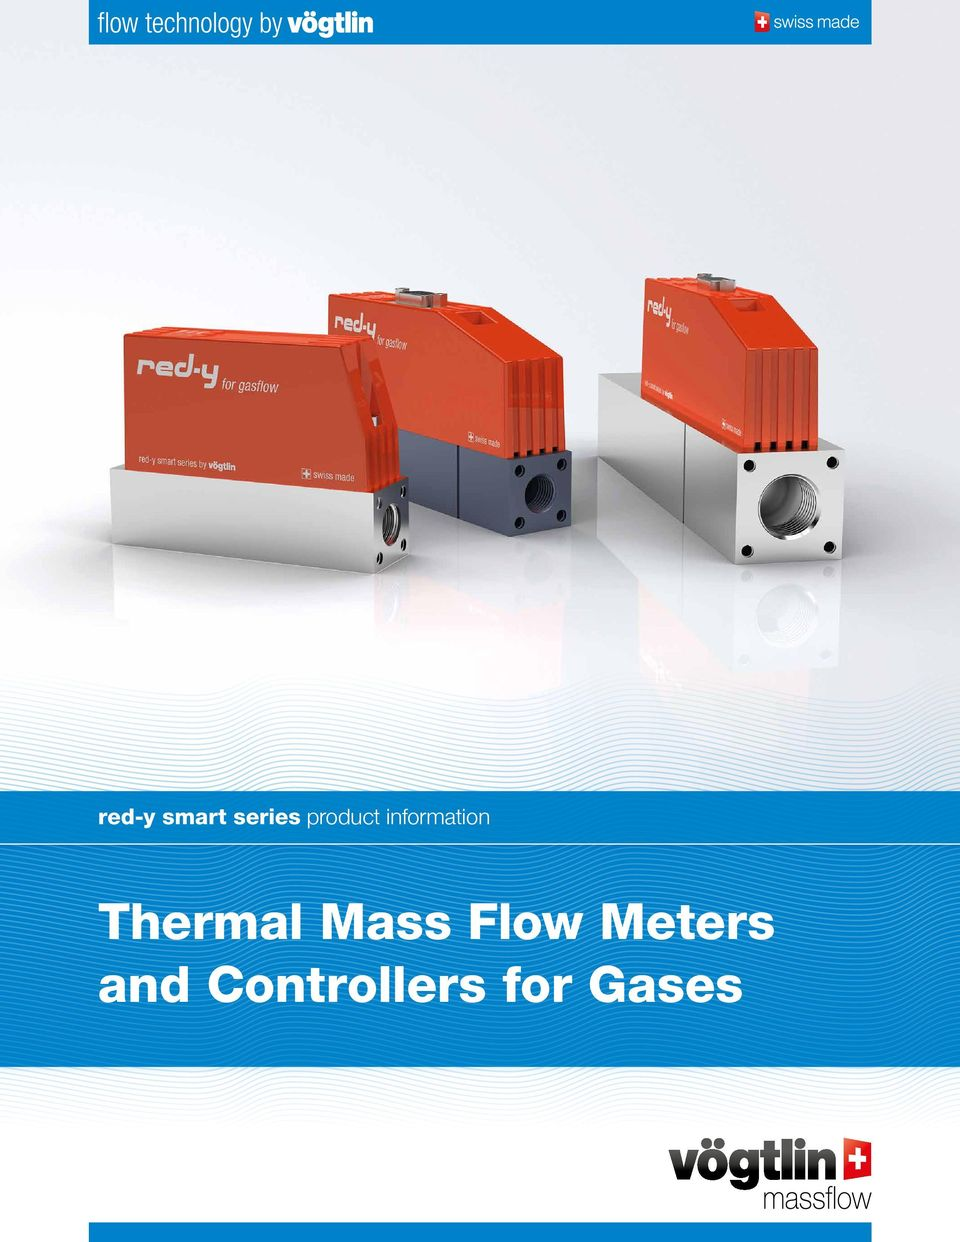 Thermal Mass Flow